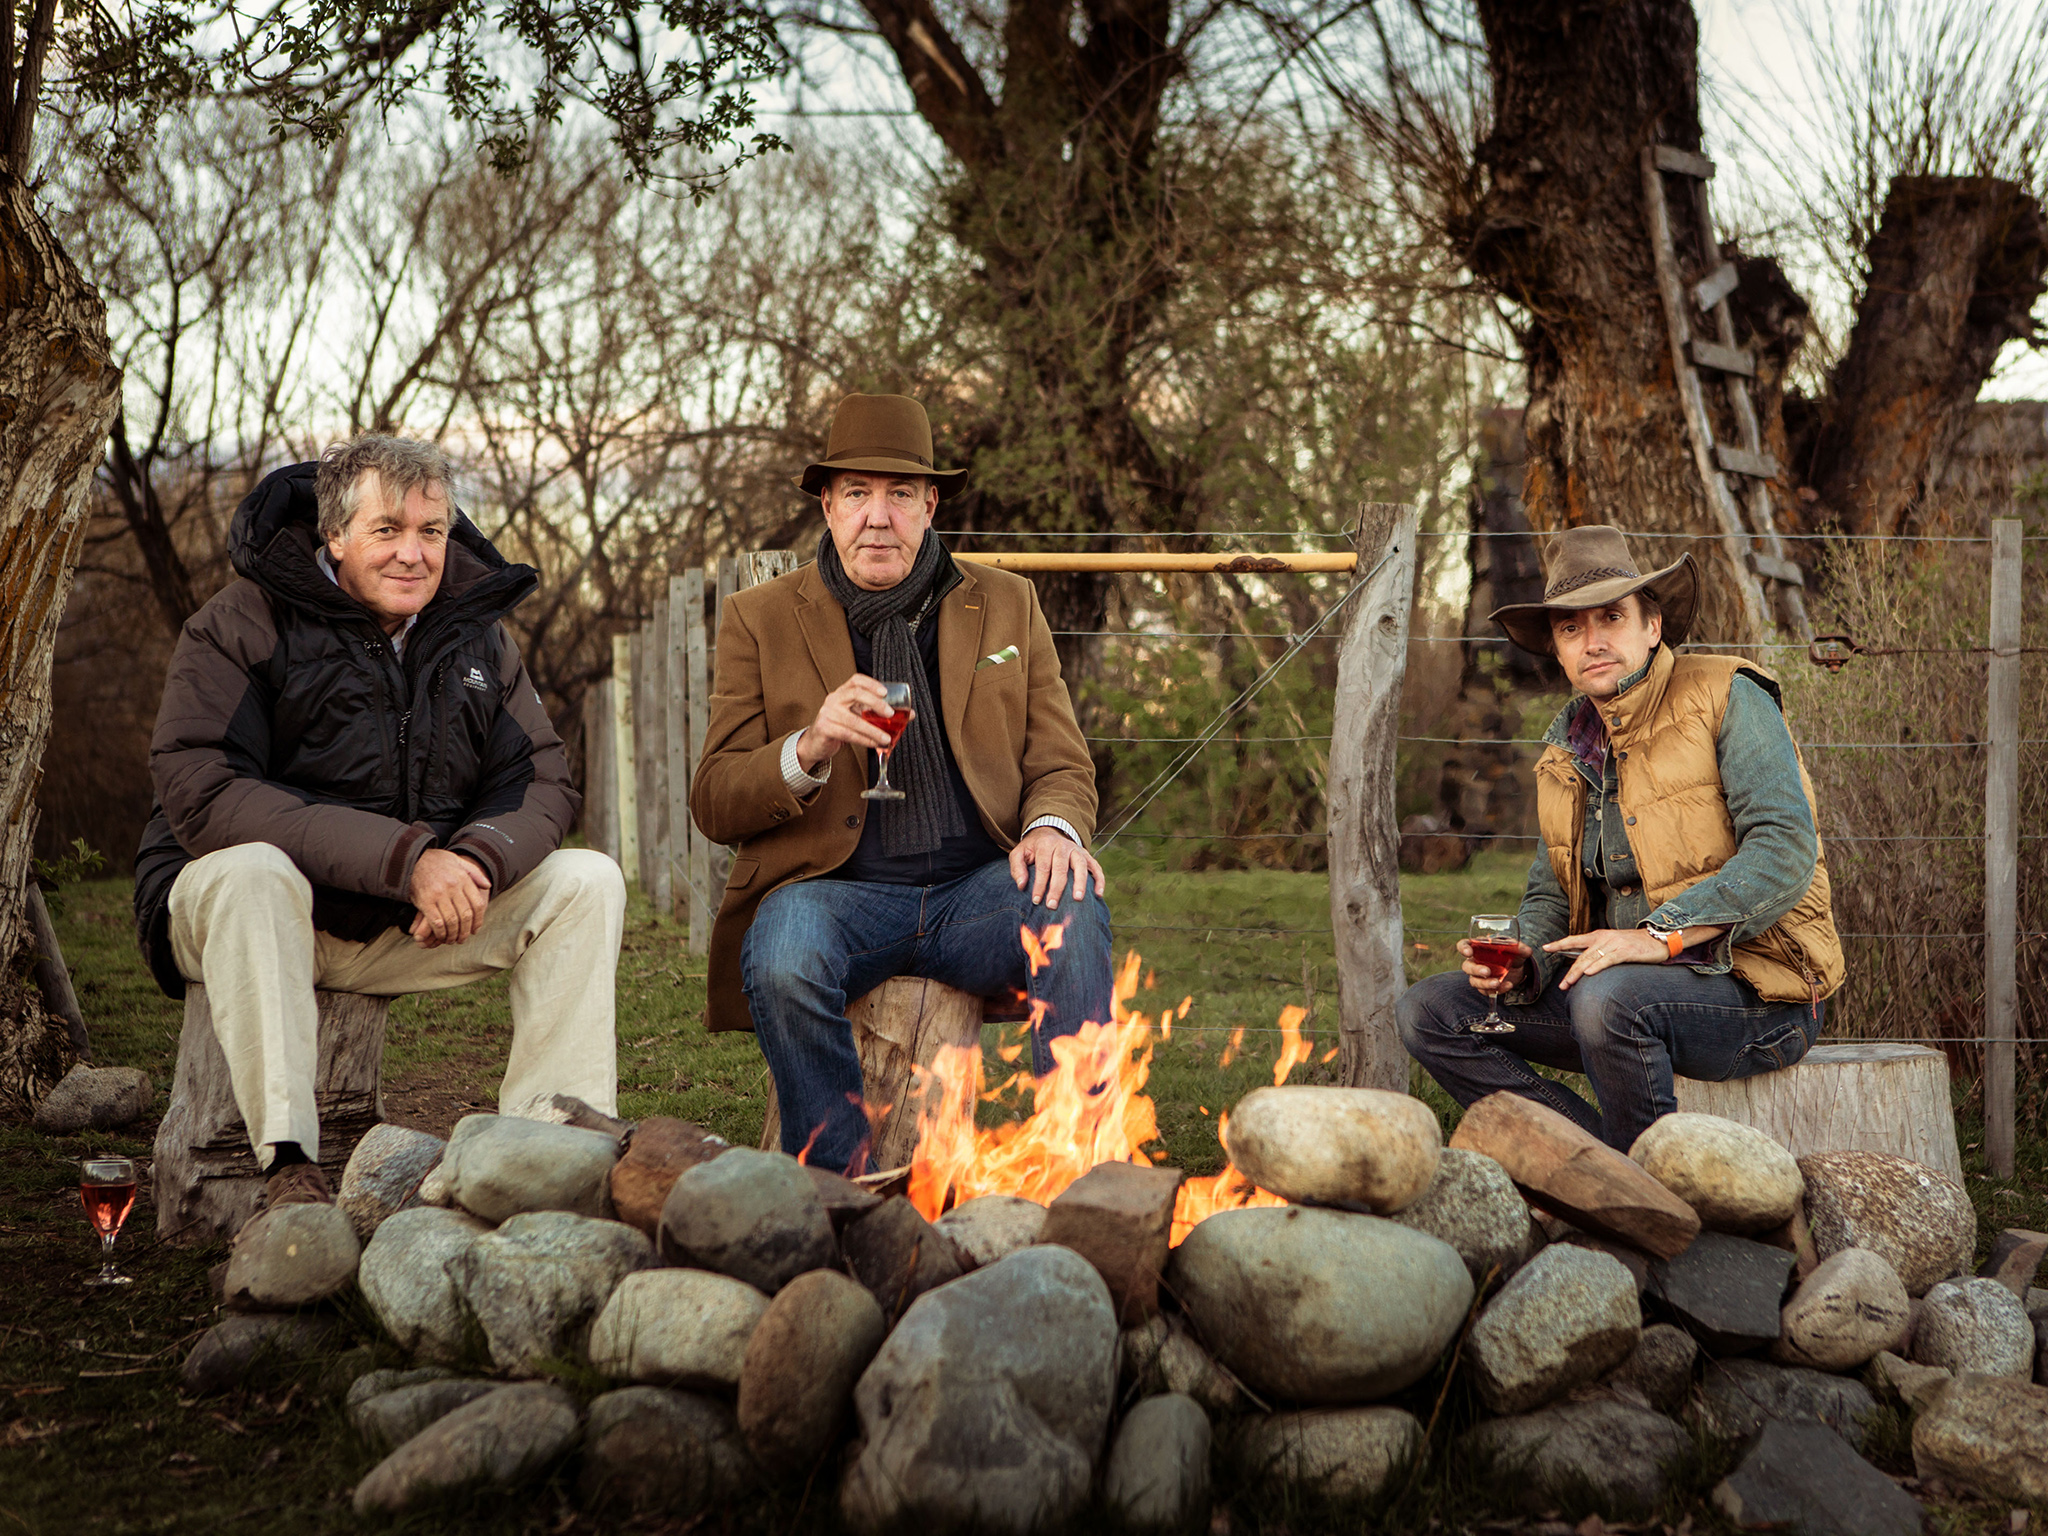 WARNING: Embargoed for publication until: 25/11/2014 - Programme Name: Top Gear - TX: n/a - Episode: Christmas (No. 1) - Picture Shows: Christmas 2014 James May, Jeremy Clarkson, Richard Hammond - (C) BBC - Photographer: Rod Fountain